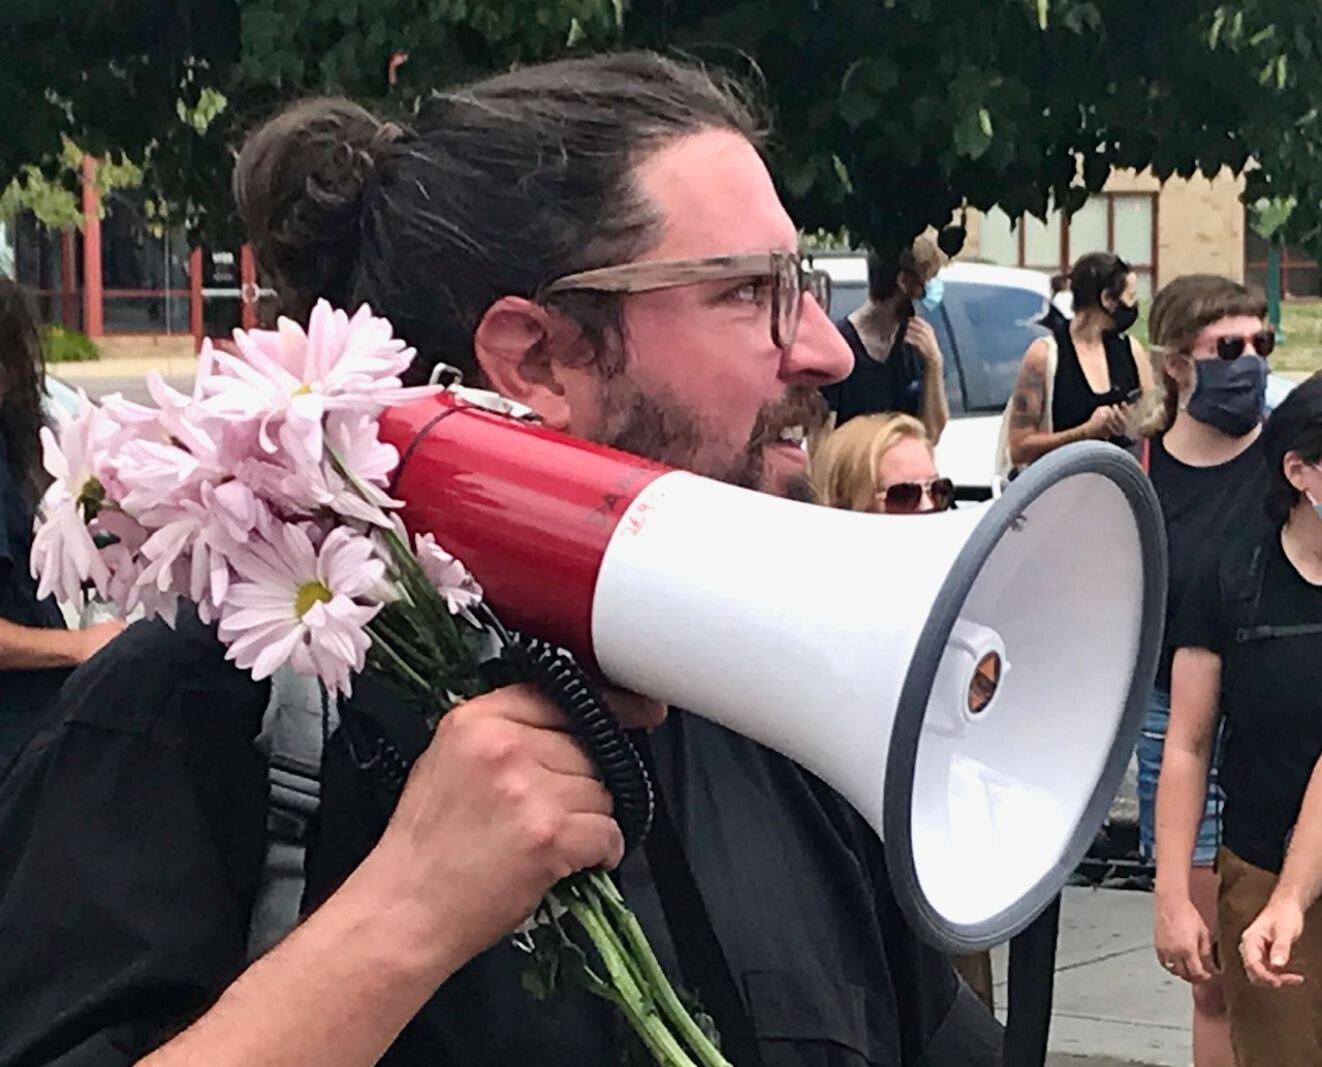 Using a megaphone adorned with the flowers, Rev. Nathan Dannison speaks to counter-protesters on Saturday, Aug. 15, 2020 in downtown Kalamazoo.